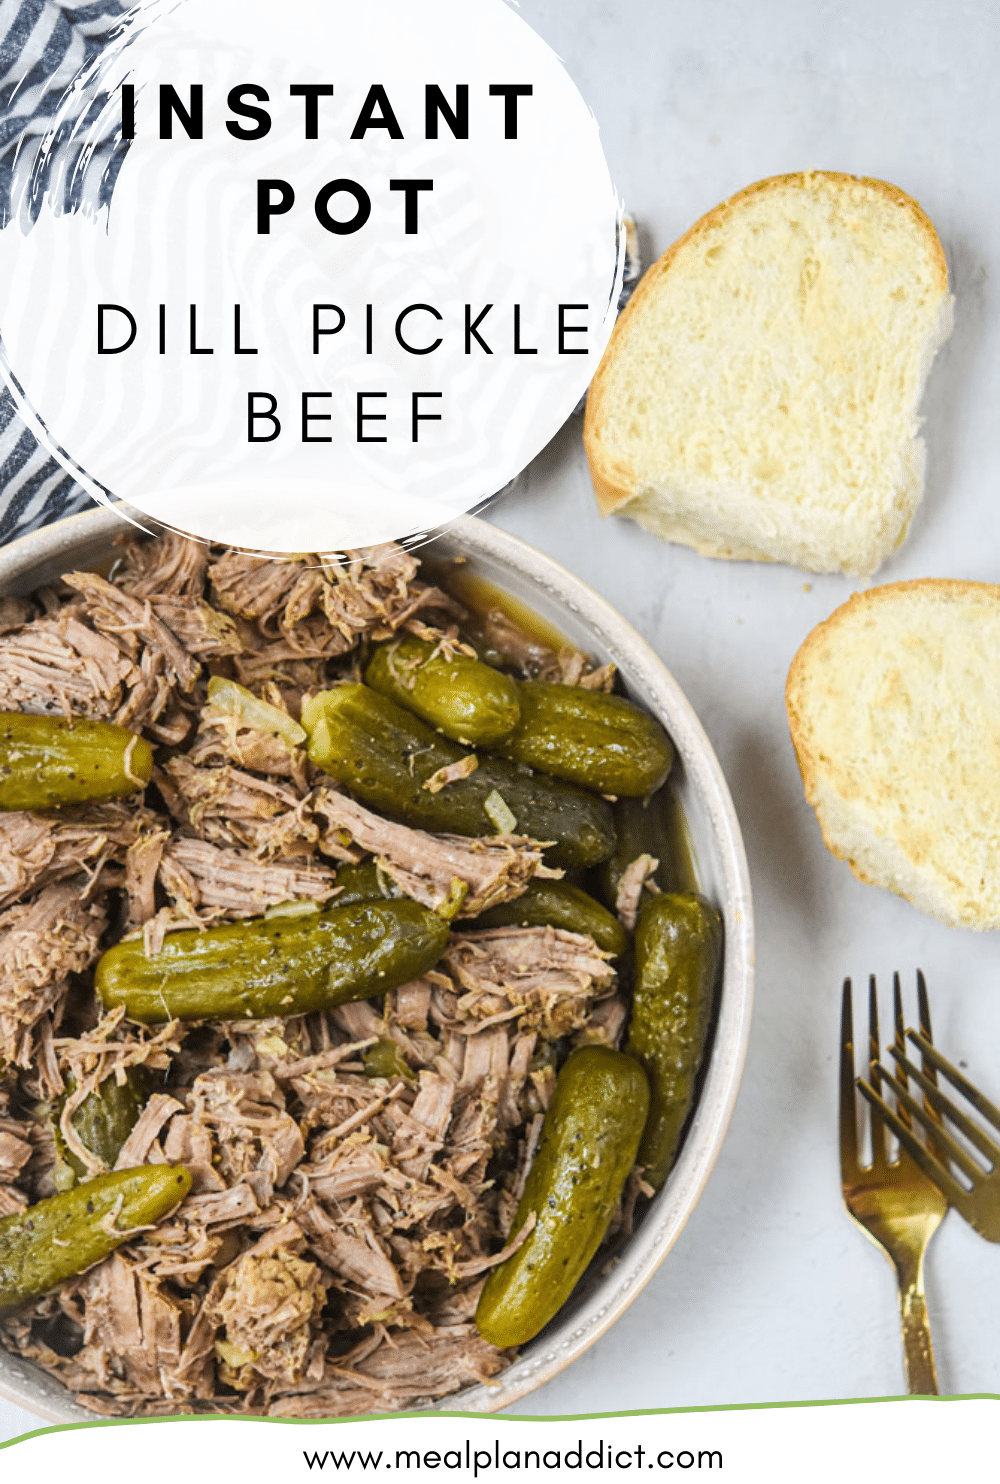 INSTANT POT DILL PICKLE BEEF plated